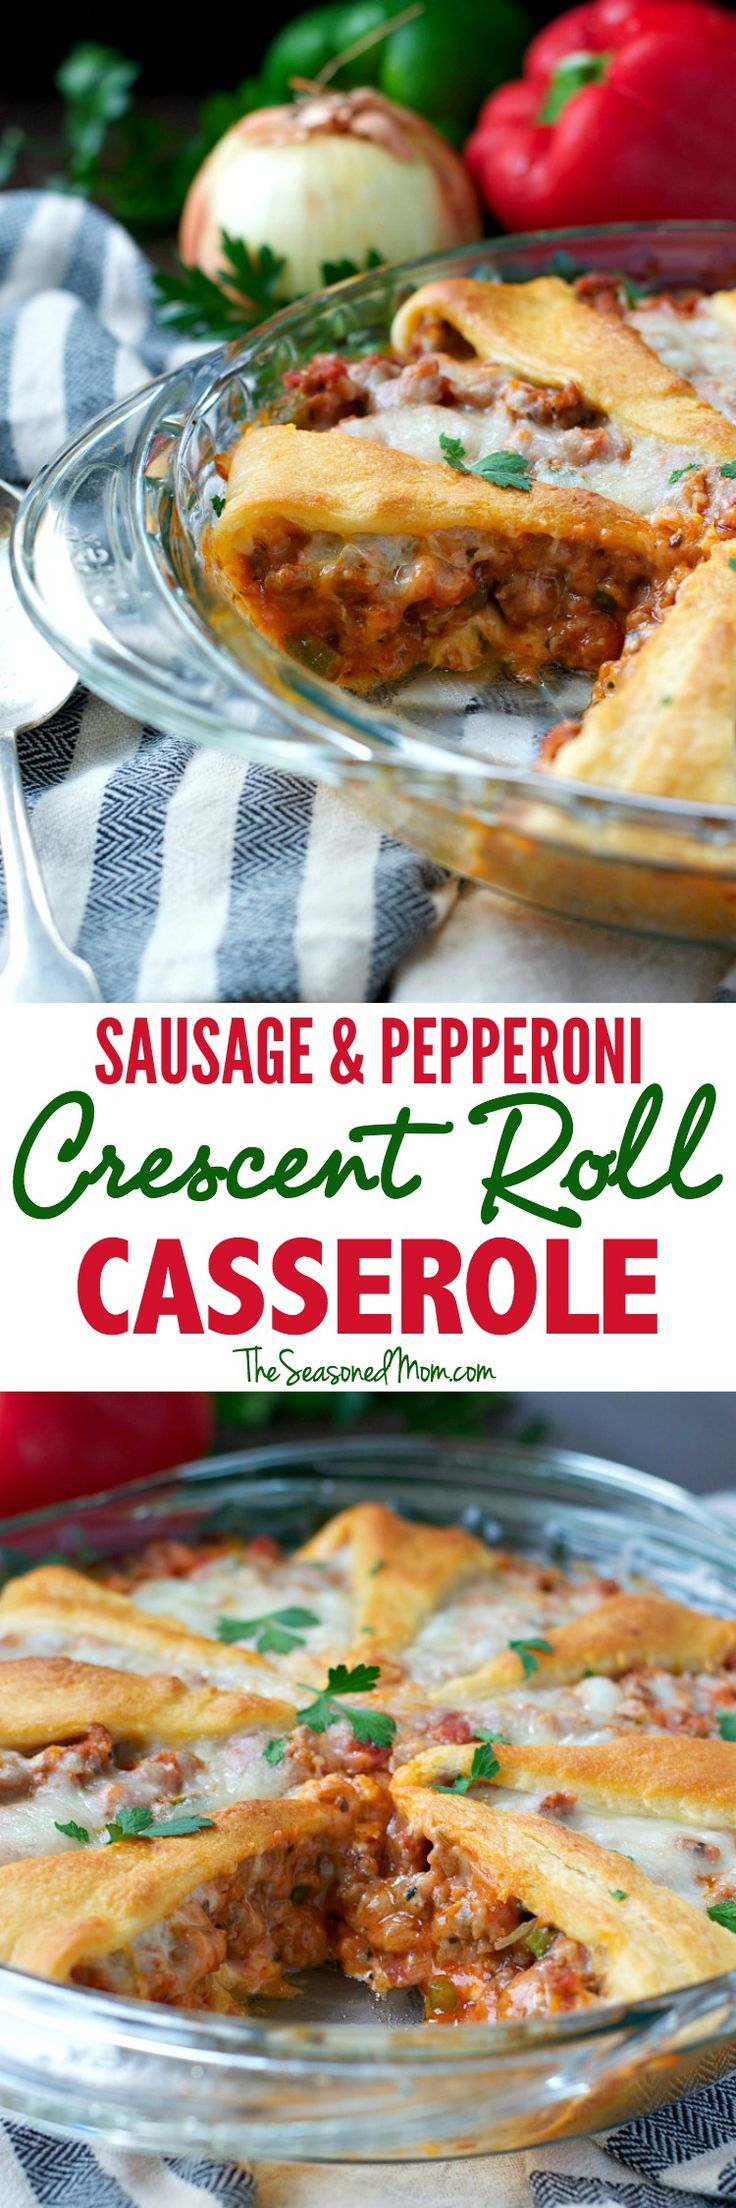 Ready for an easy weeknight meal? This Sausage & Pepperoni Crescent Roll Casserole is sure to be a hit.